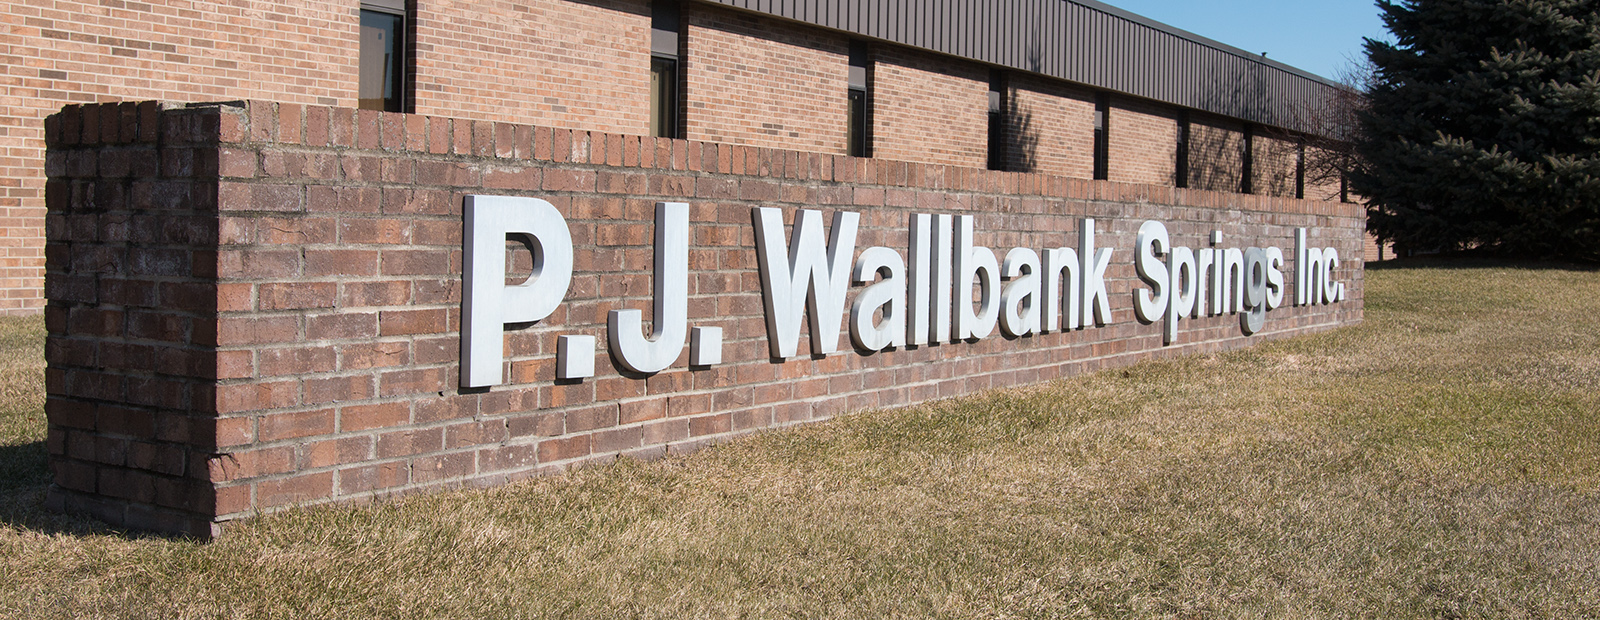 PJ Wallbank Springs is boosting its investment in Port Huron.